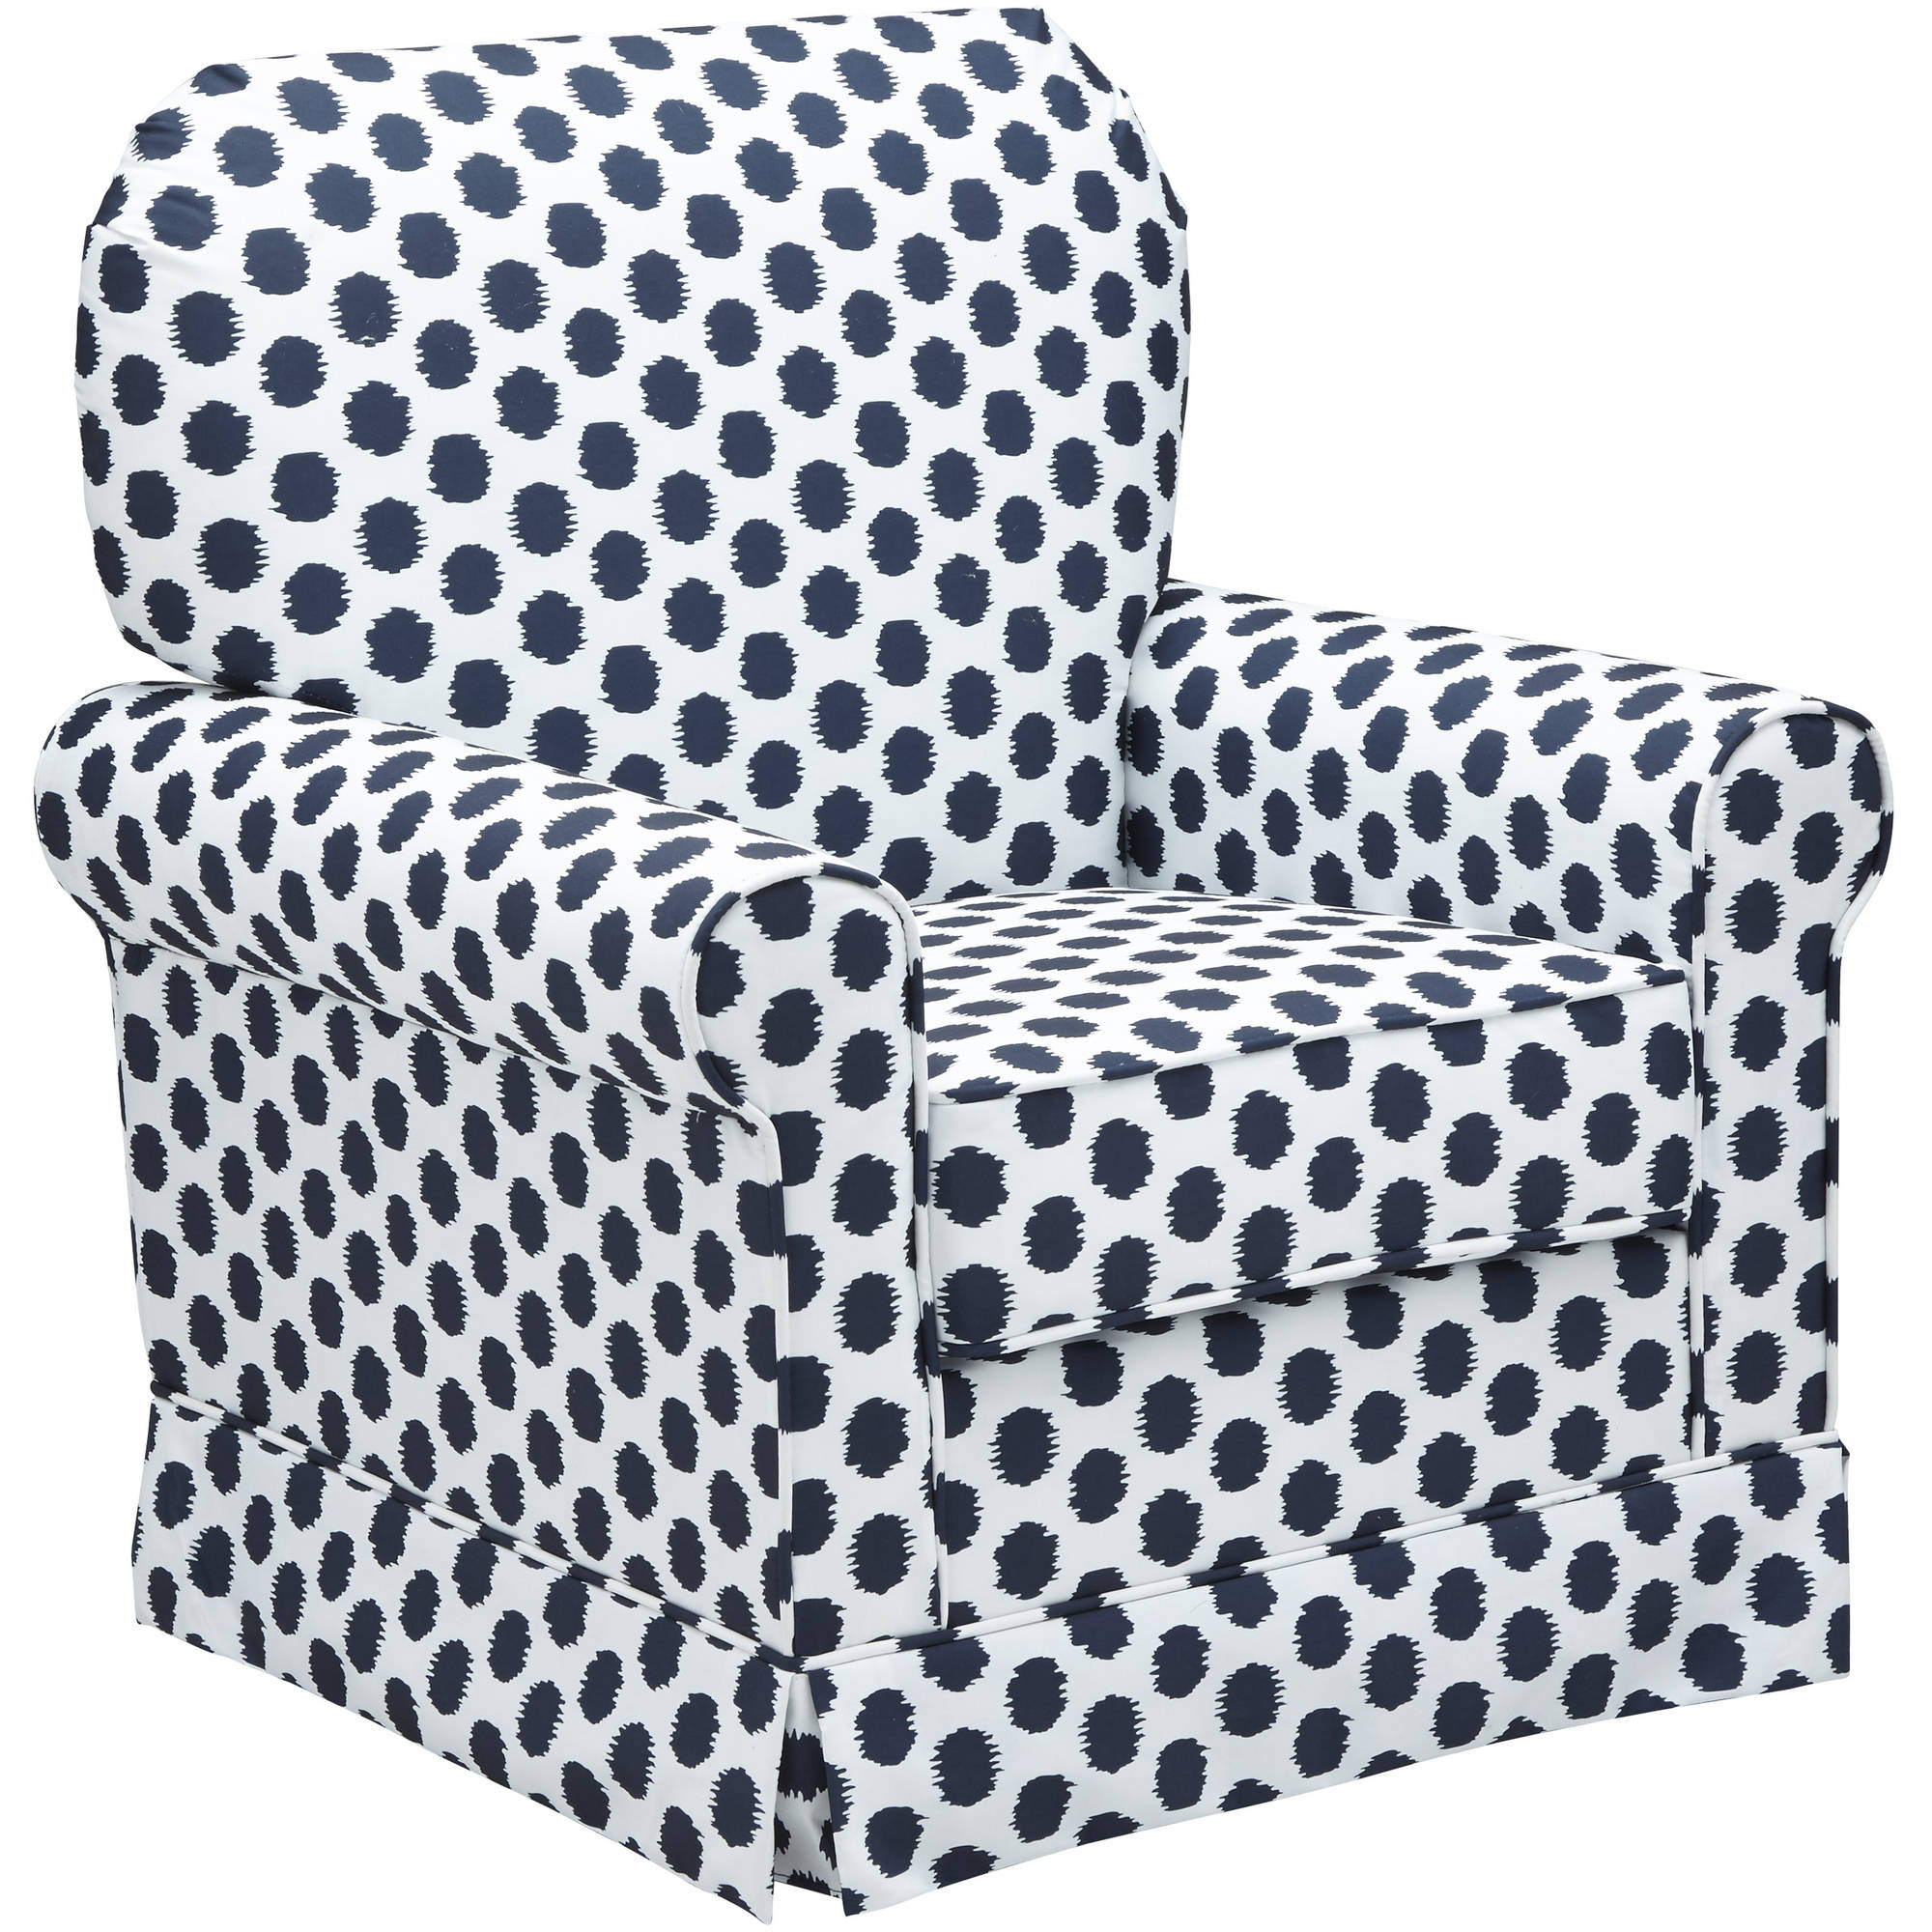 Storkcraft Polka Dot Upholstered Swivel Glider White and Navy Blue